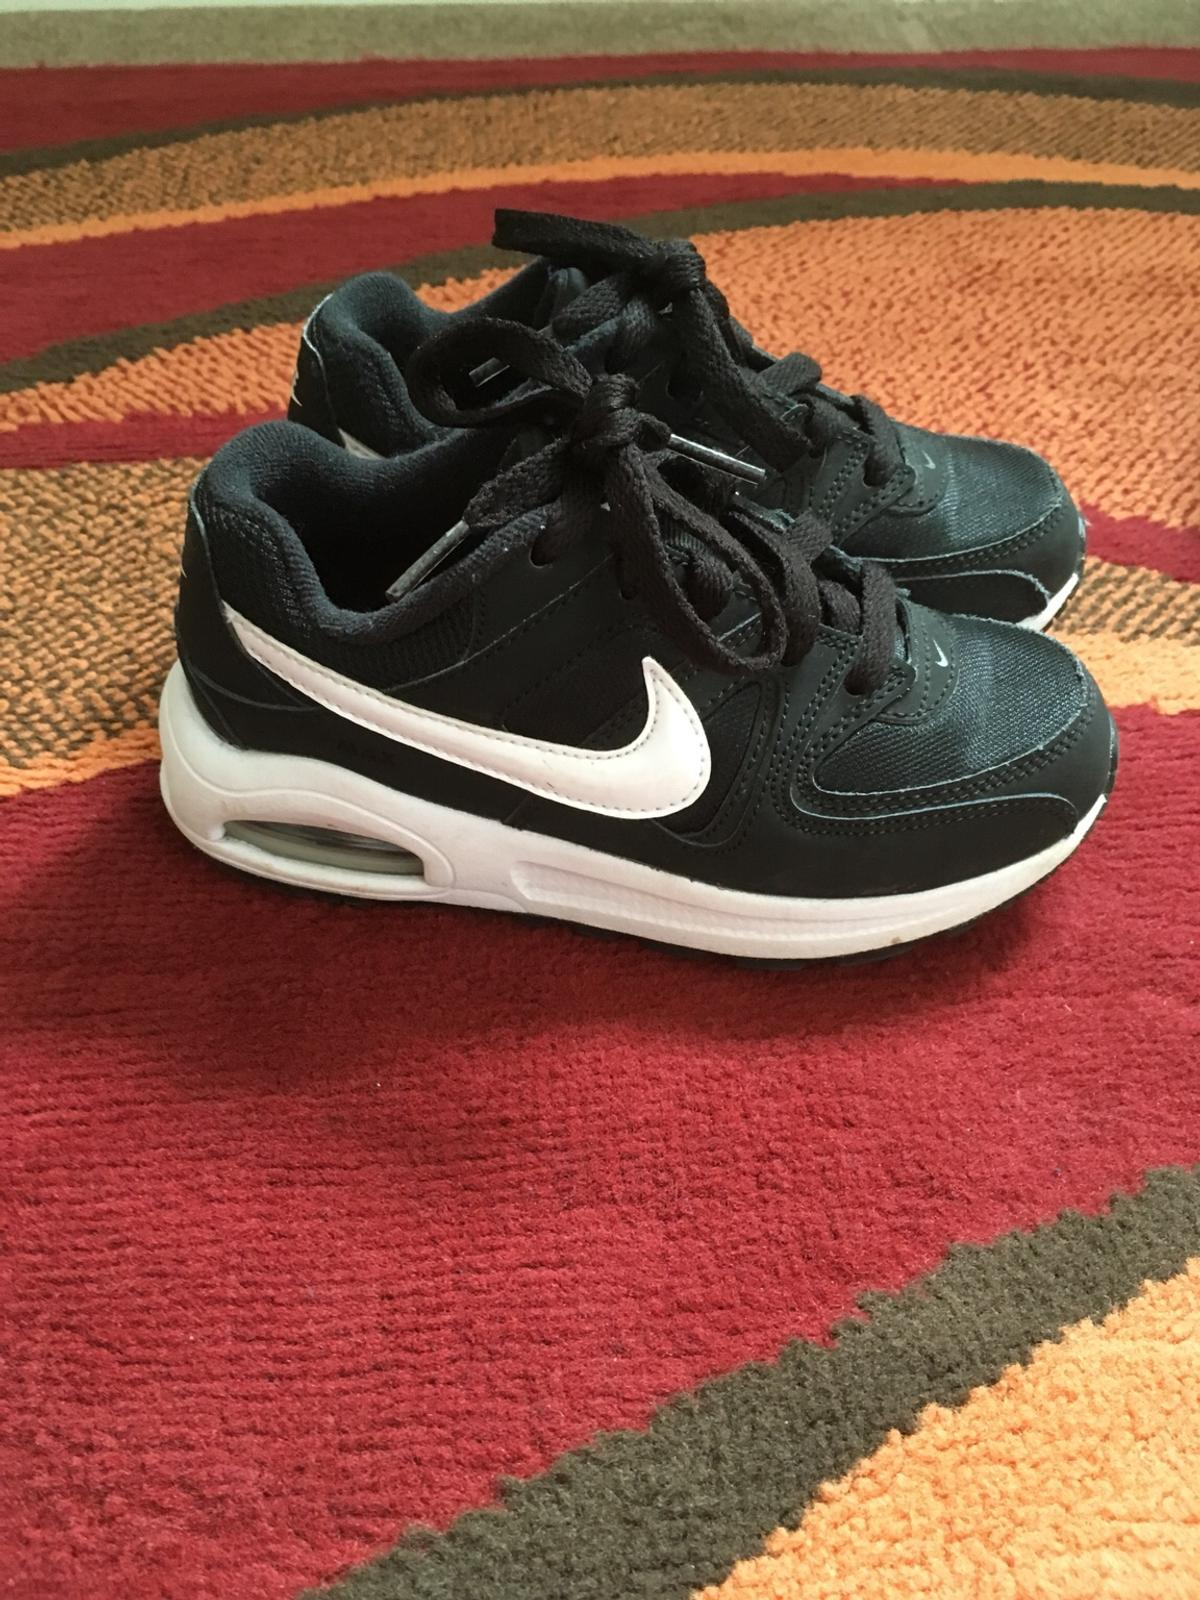 09e13373d1f08 Kids Nike Air Trainers in Wixams for £15.00 for sale - Shpock